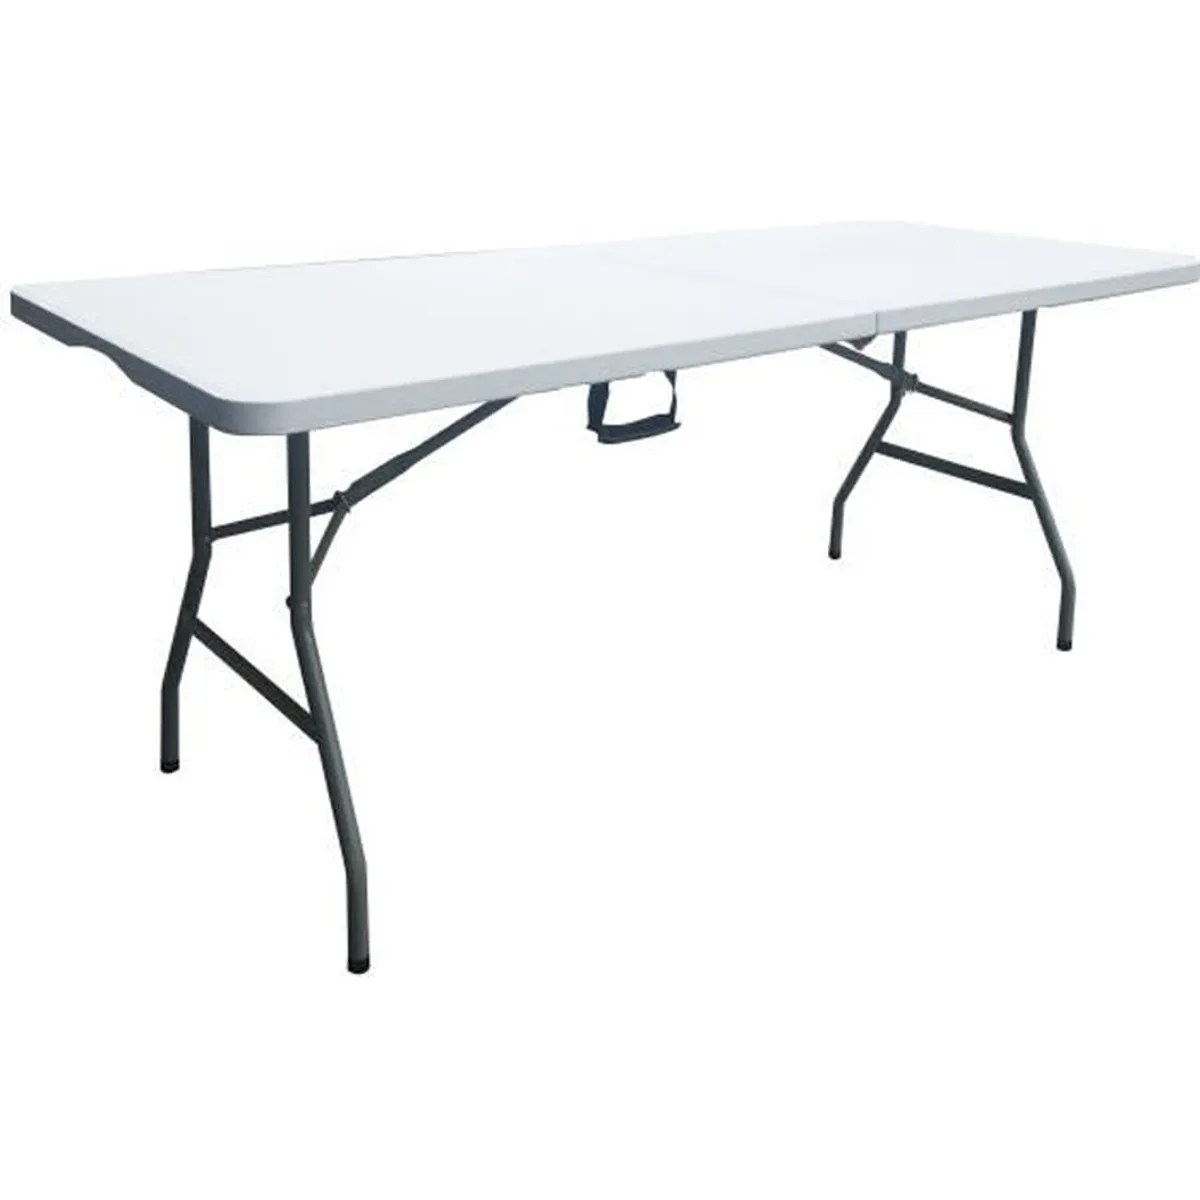 Pied Table Pliant Table Pliante Reception Achat Vente Pas Cher